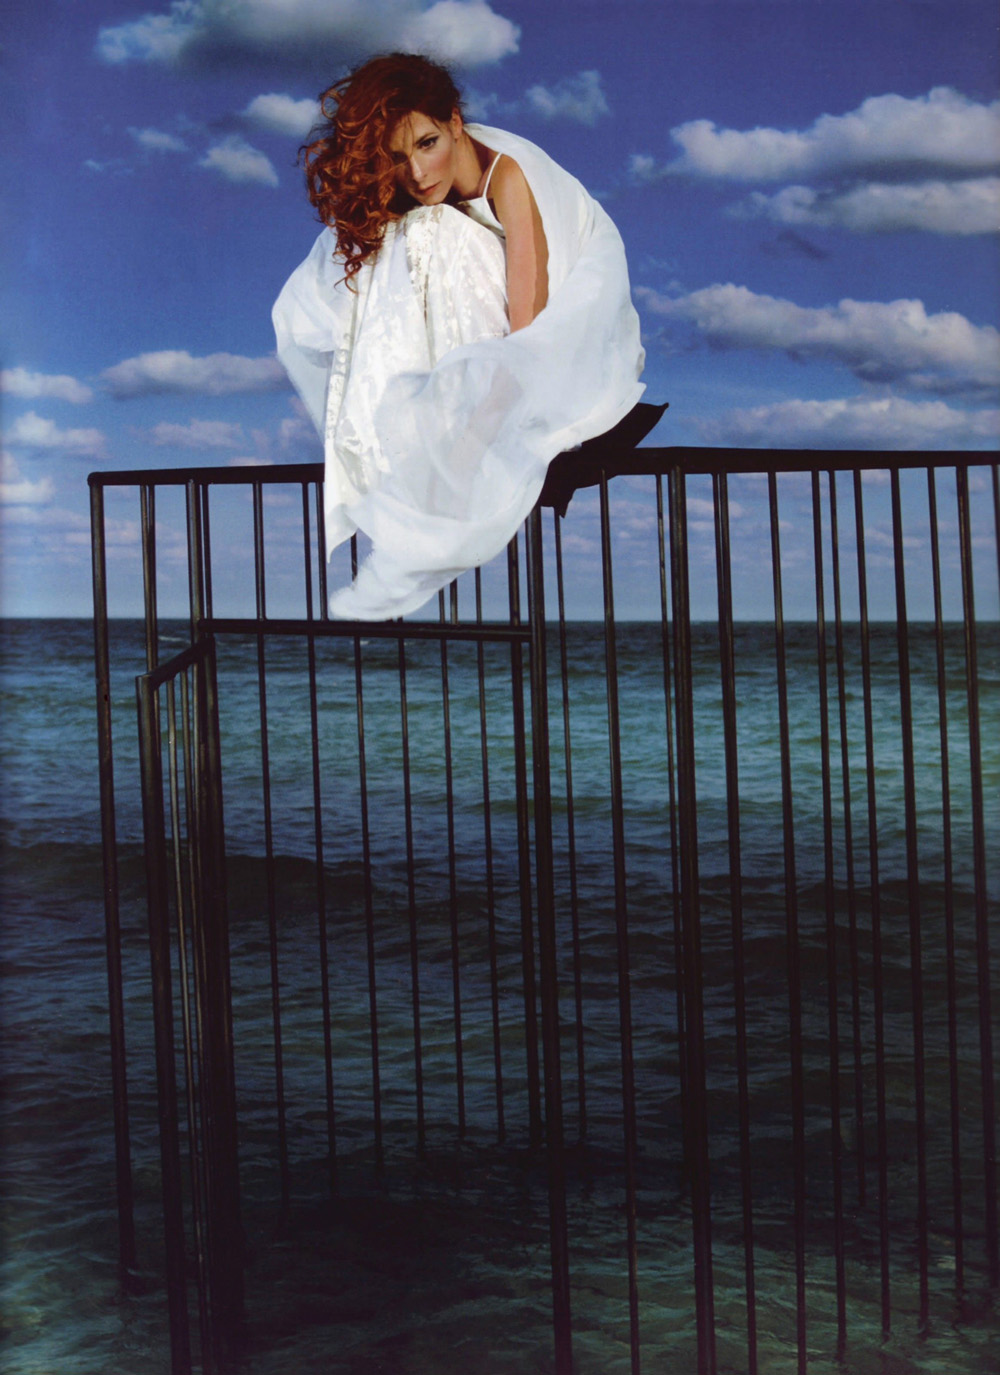 Mylene farmer picture #506315